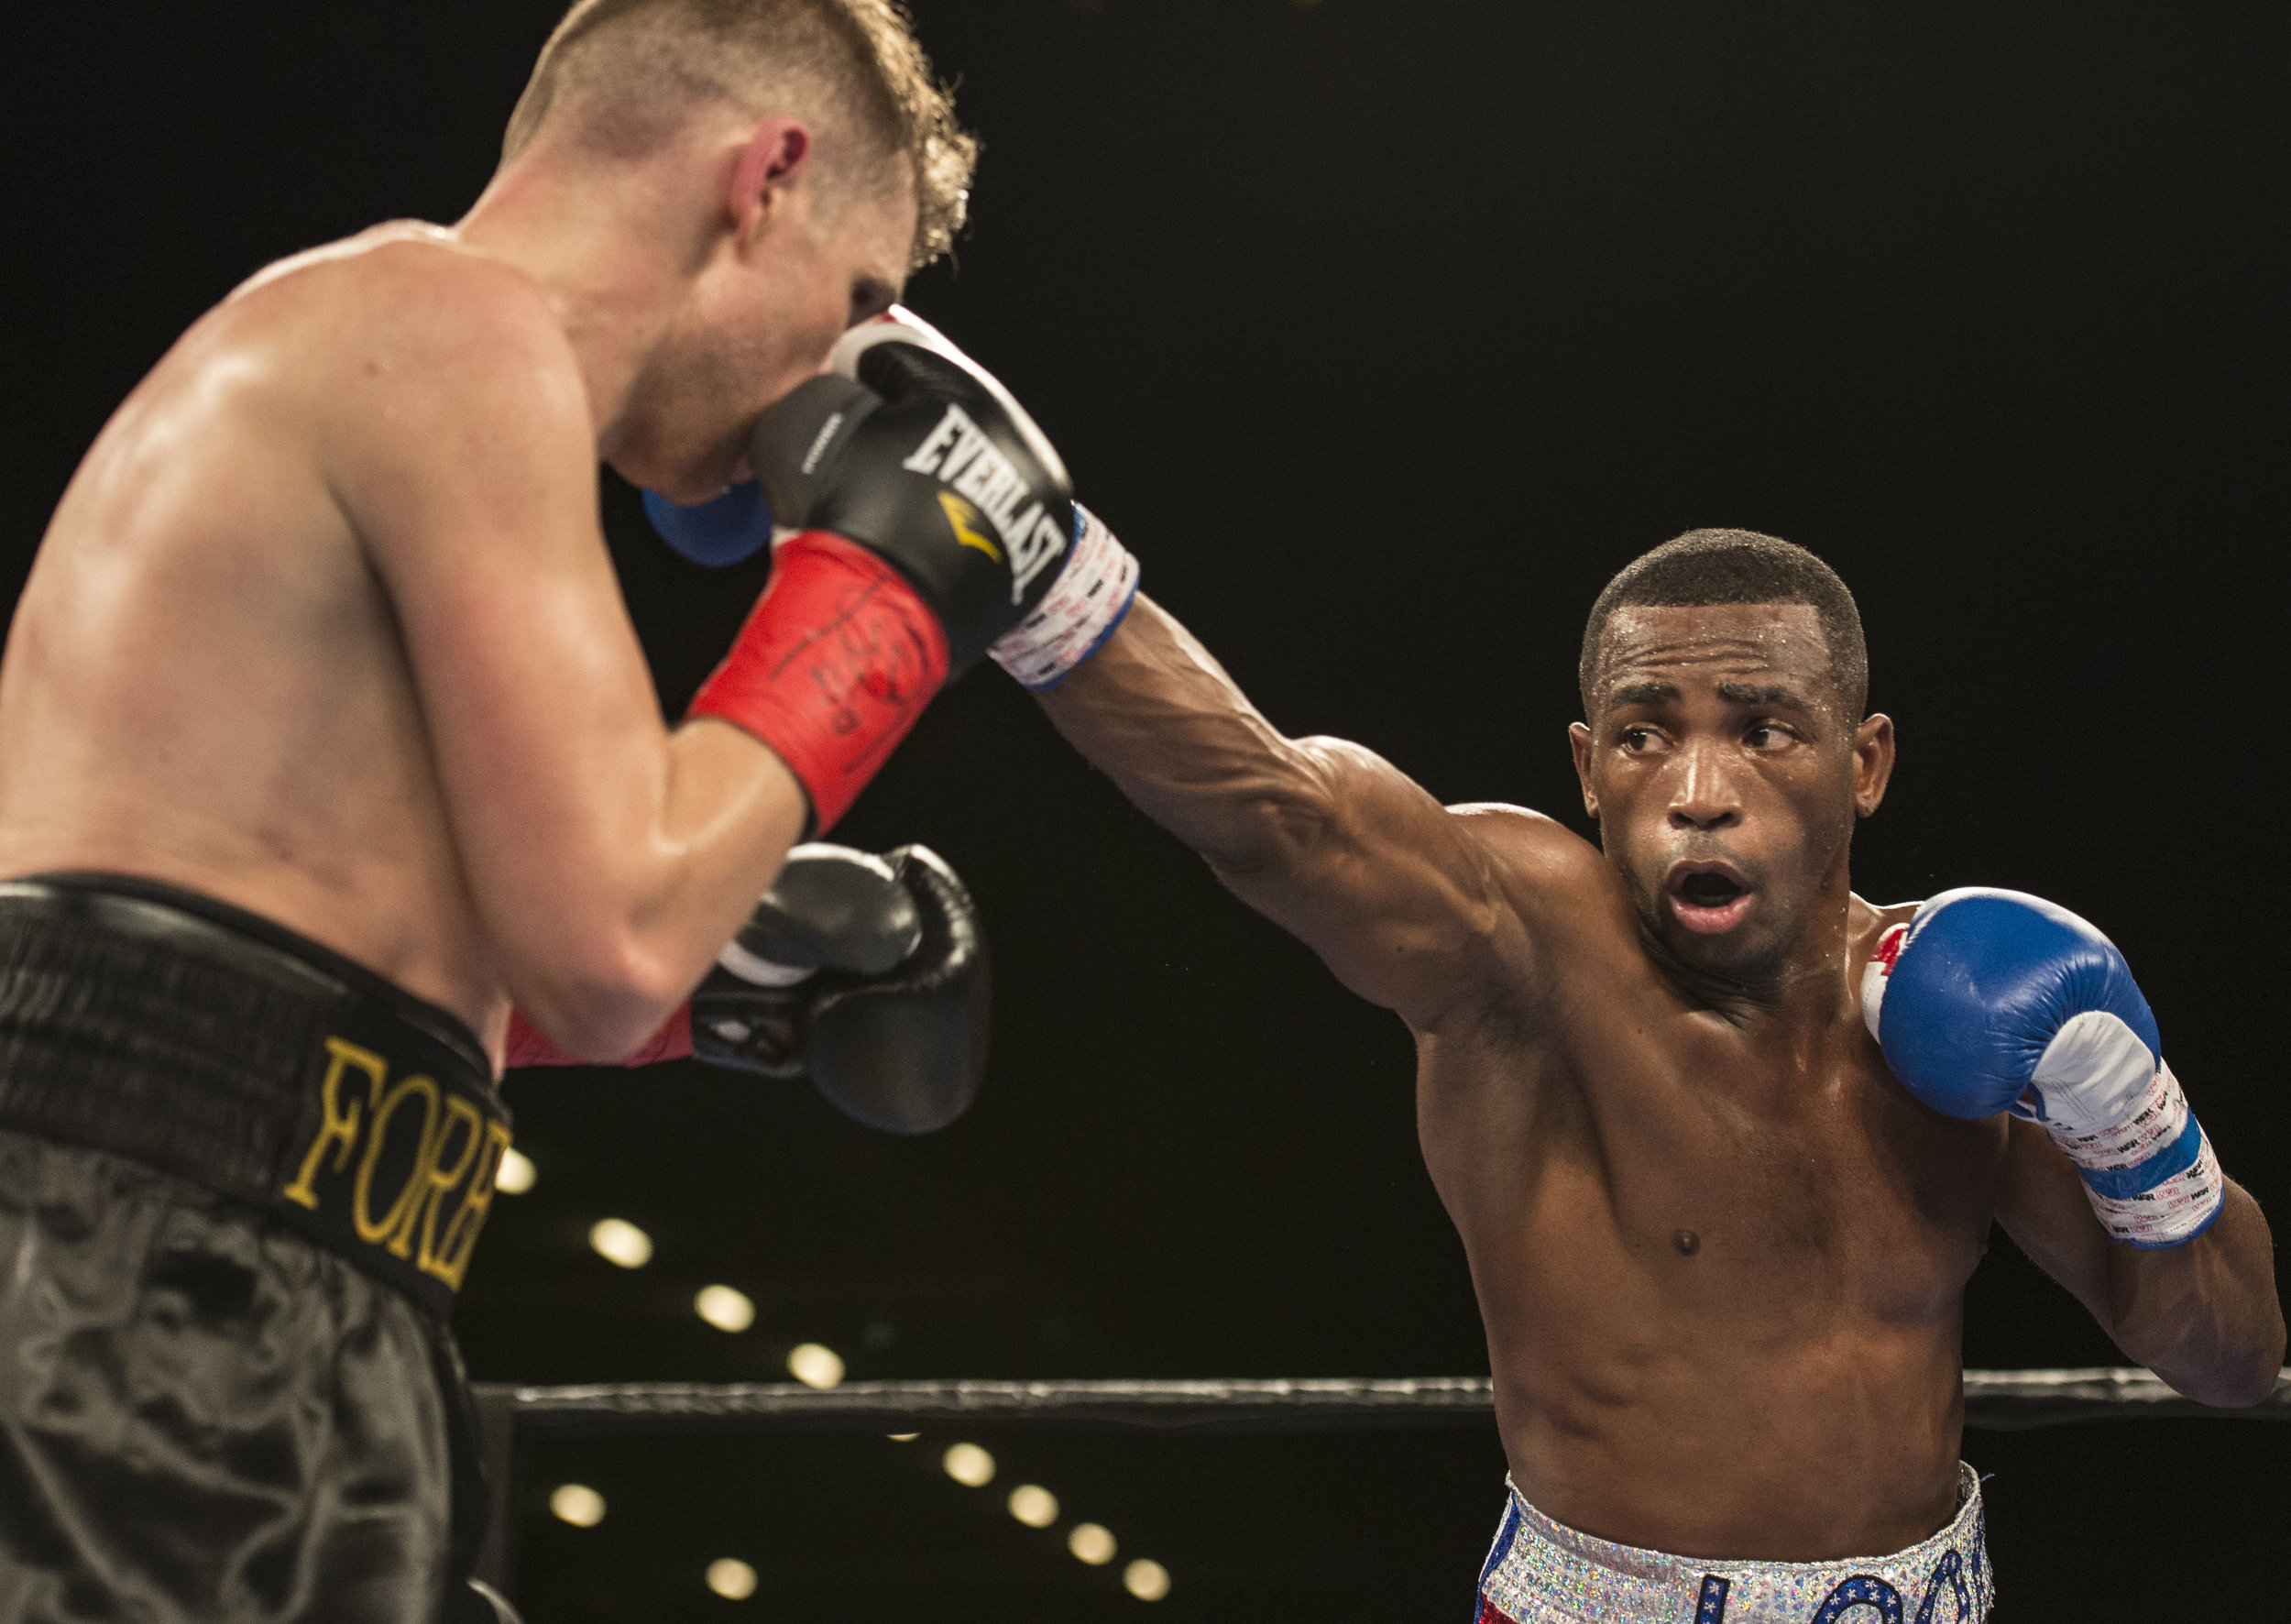 Cuban boxer Erislandy Lara attempts to connect with a jab during his fight against Yuri Foreman at Hialeah Casino Park.